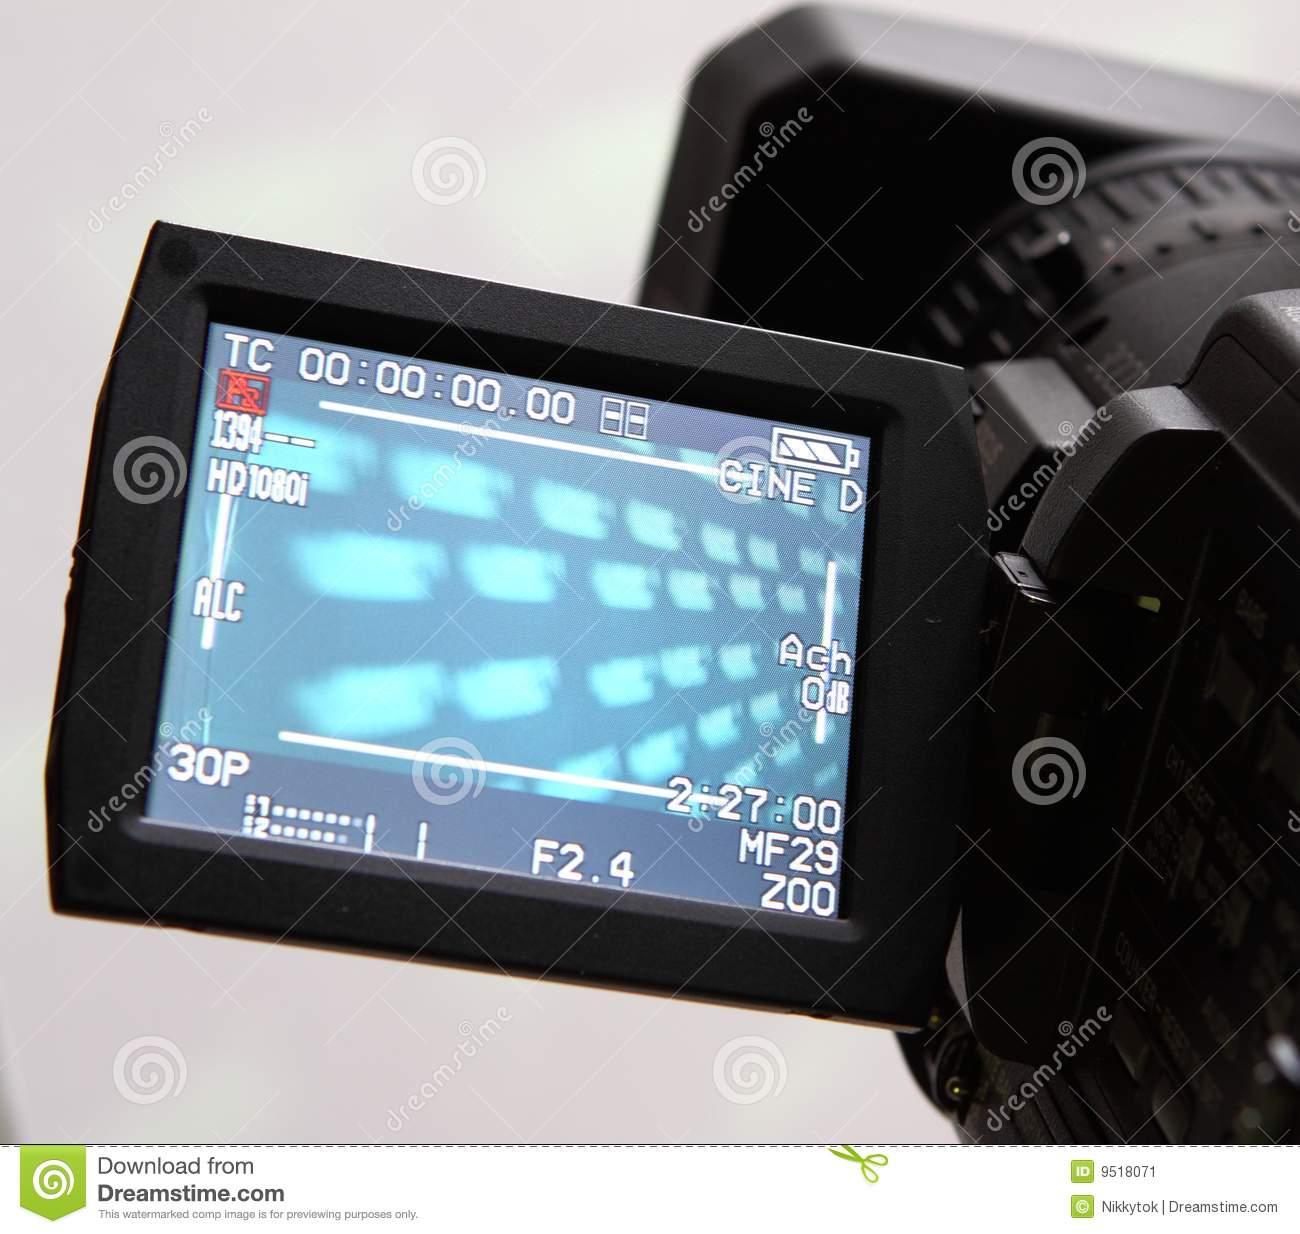 Display Of An Full HD Camcorder Stock Image - Image of screen ...